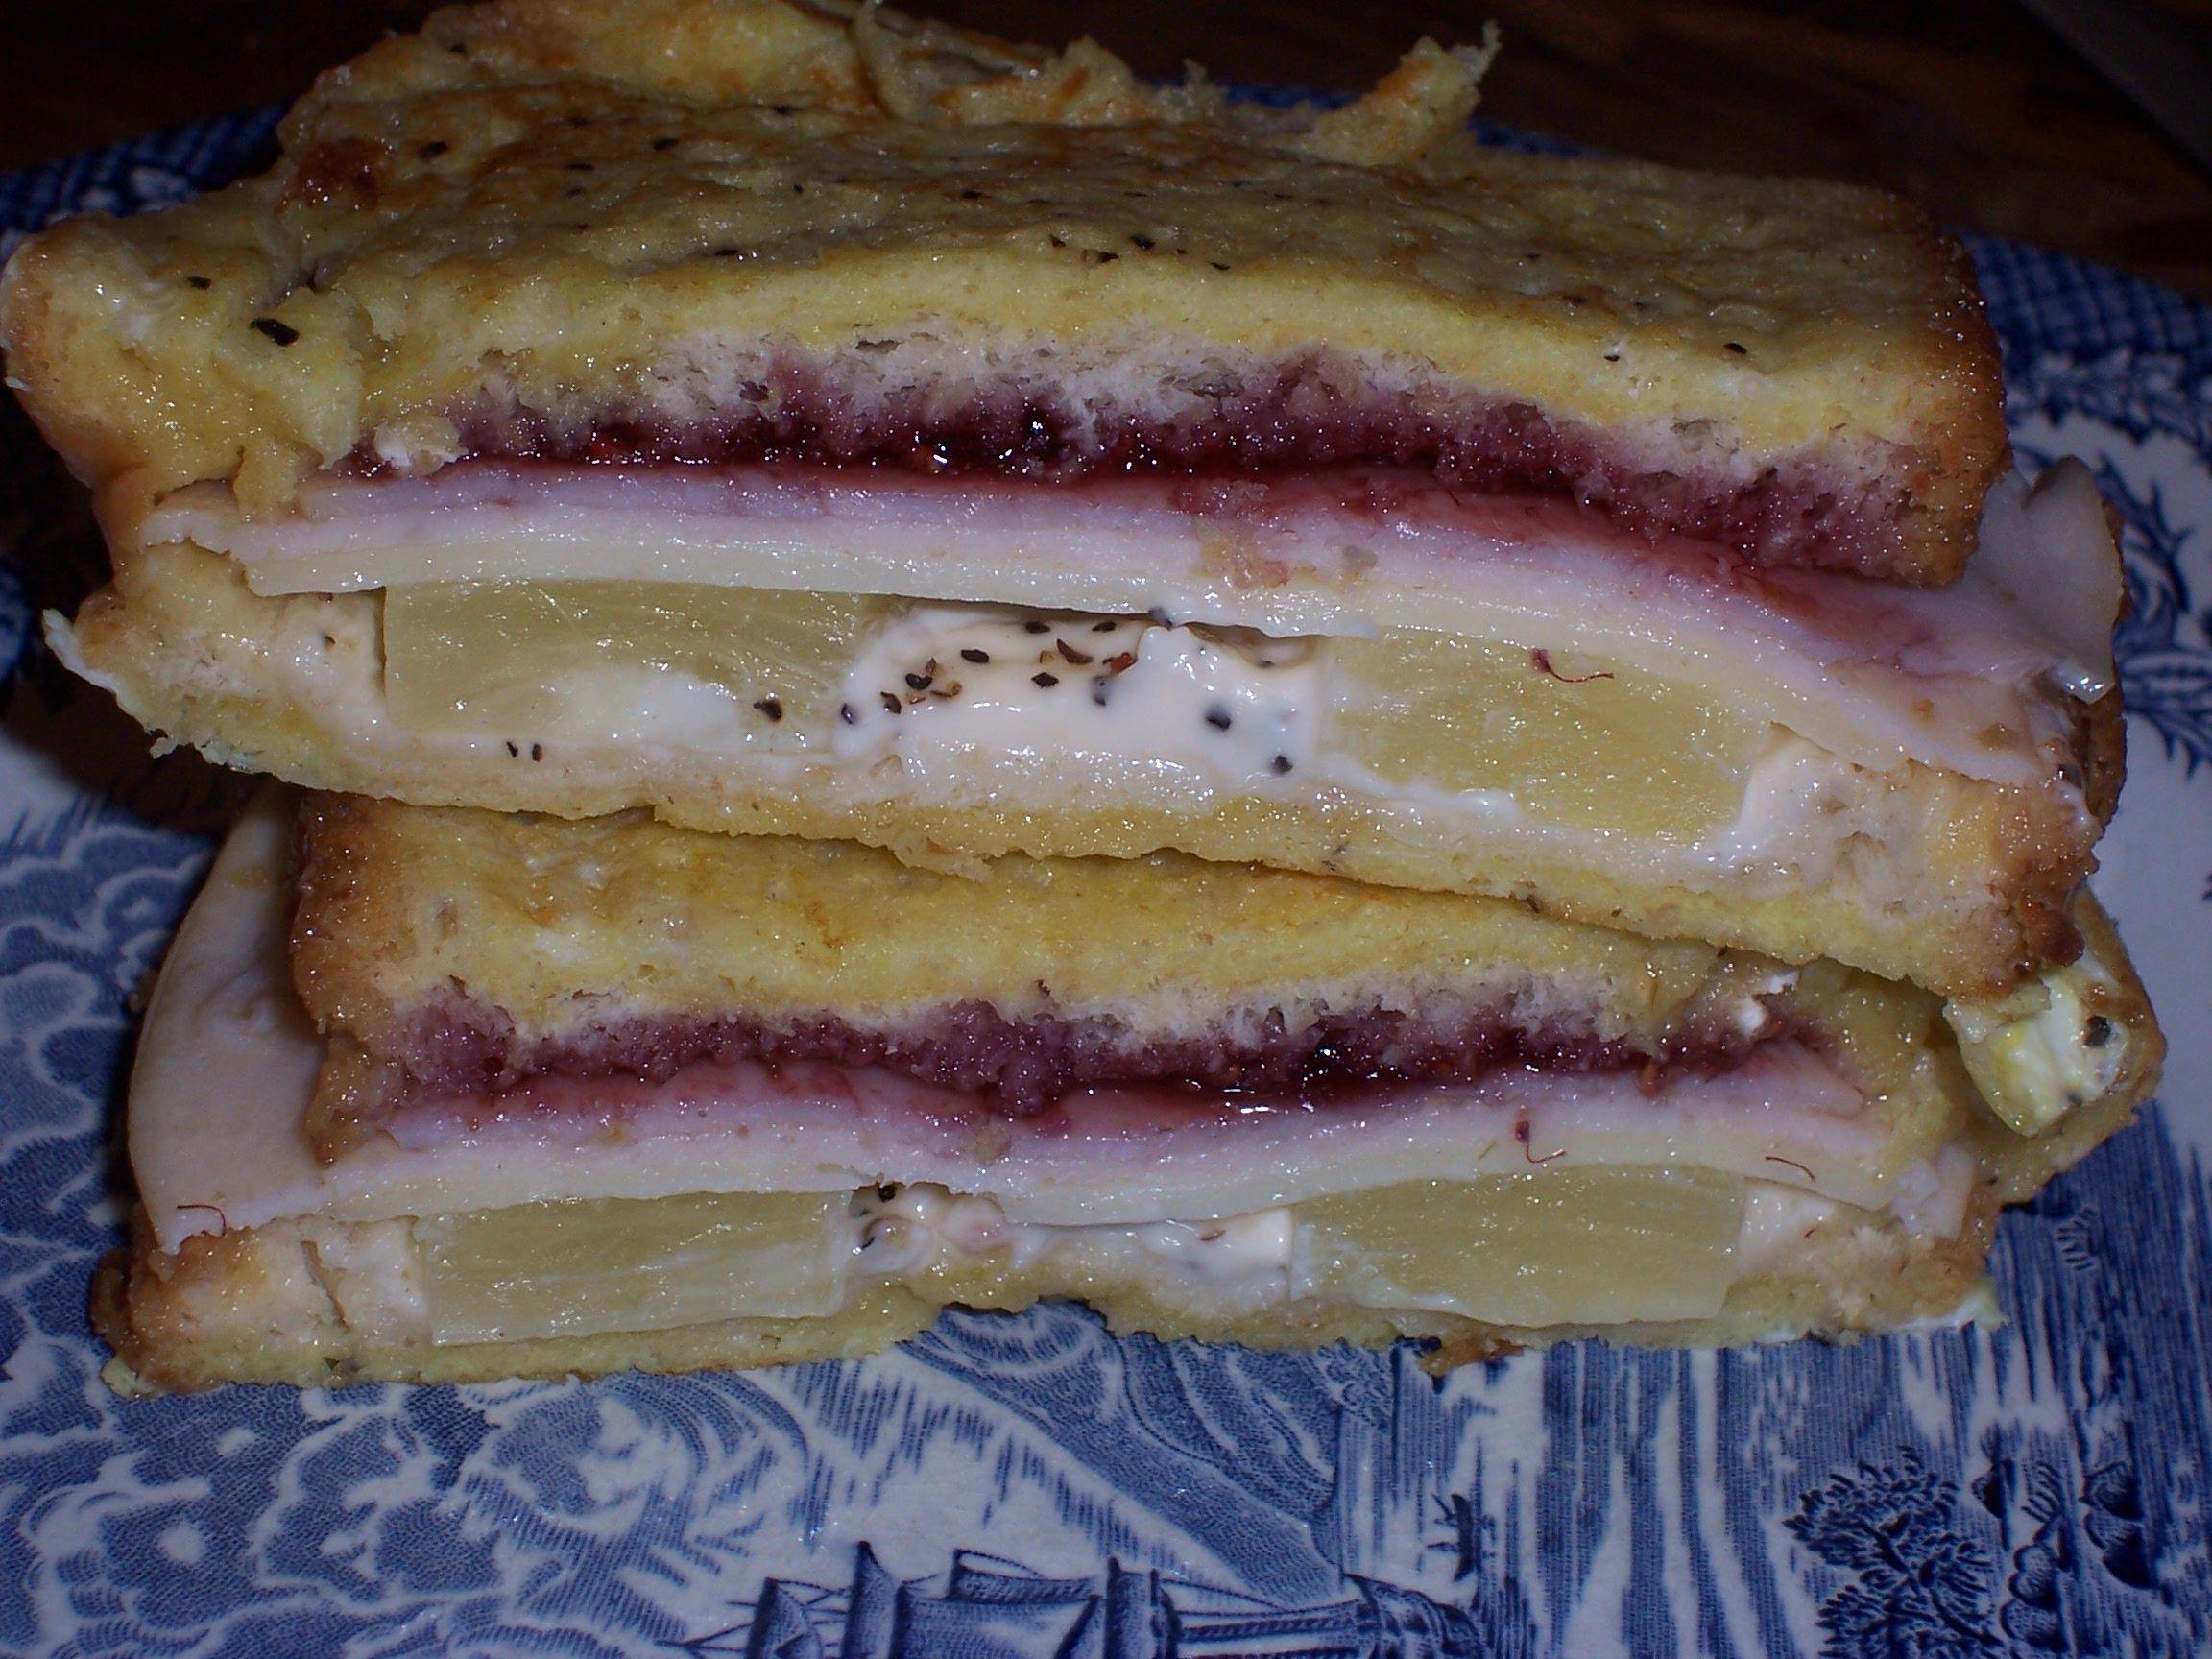 Marco Polo Sandwich | Recipe | Pinterest | Marco polo, Grilling and Egg